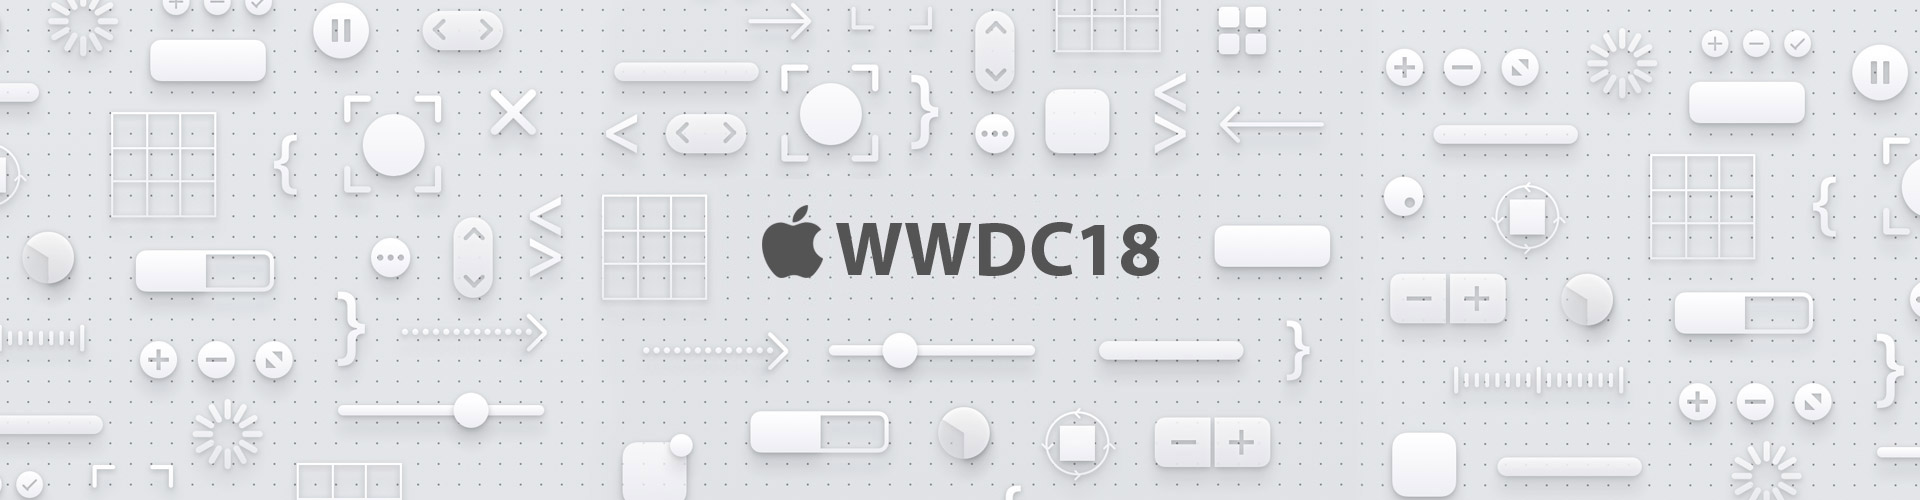 Header image of Apple's 2018 WWDC – What's New in iOS12?